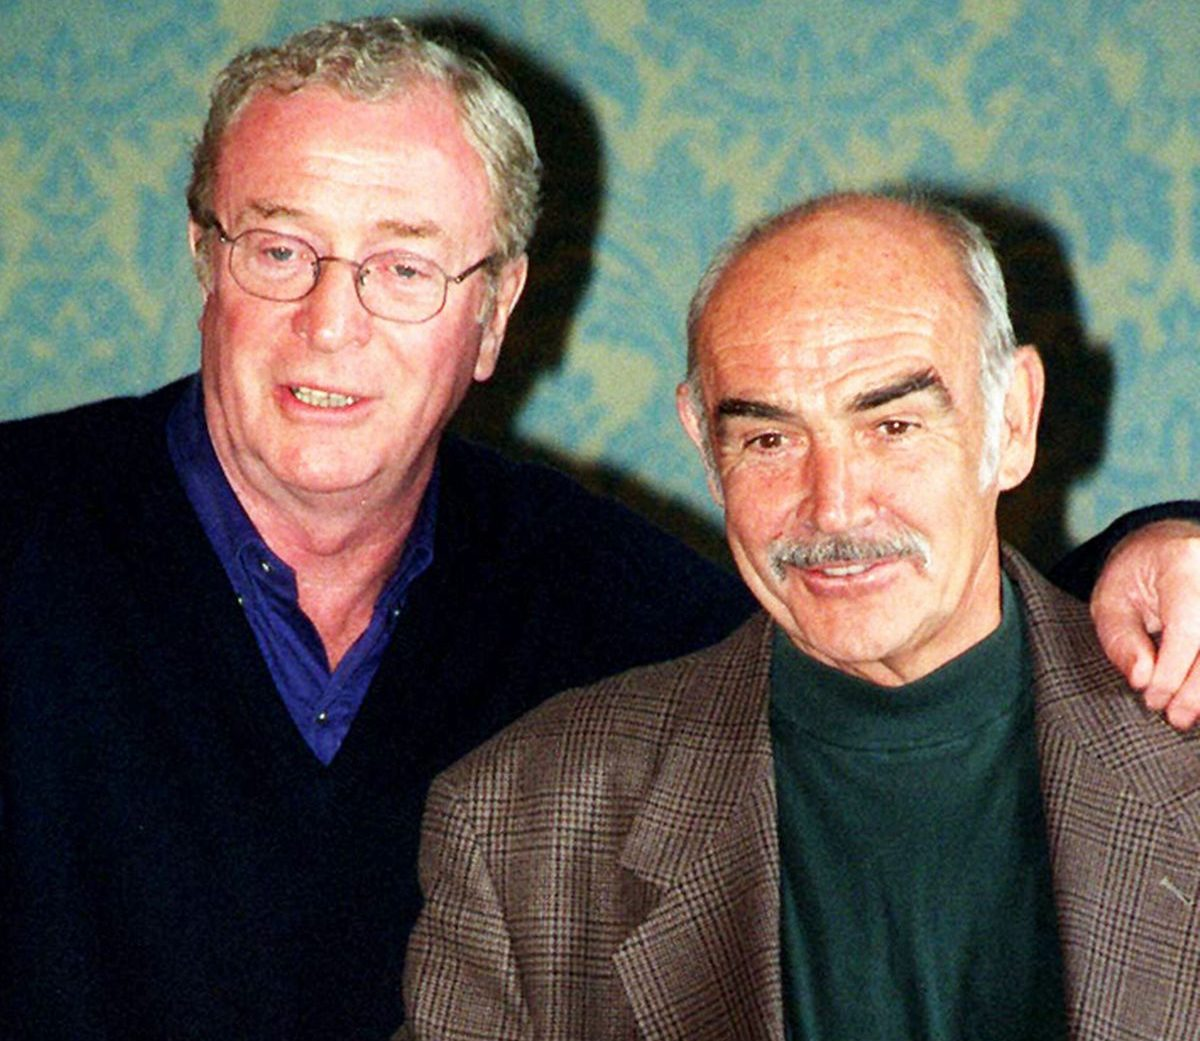 Sean Connery Michael Caine e1604328774412 20 Things You Never Knew About Sean Connery